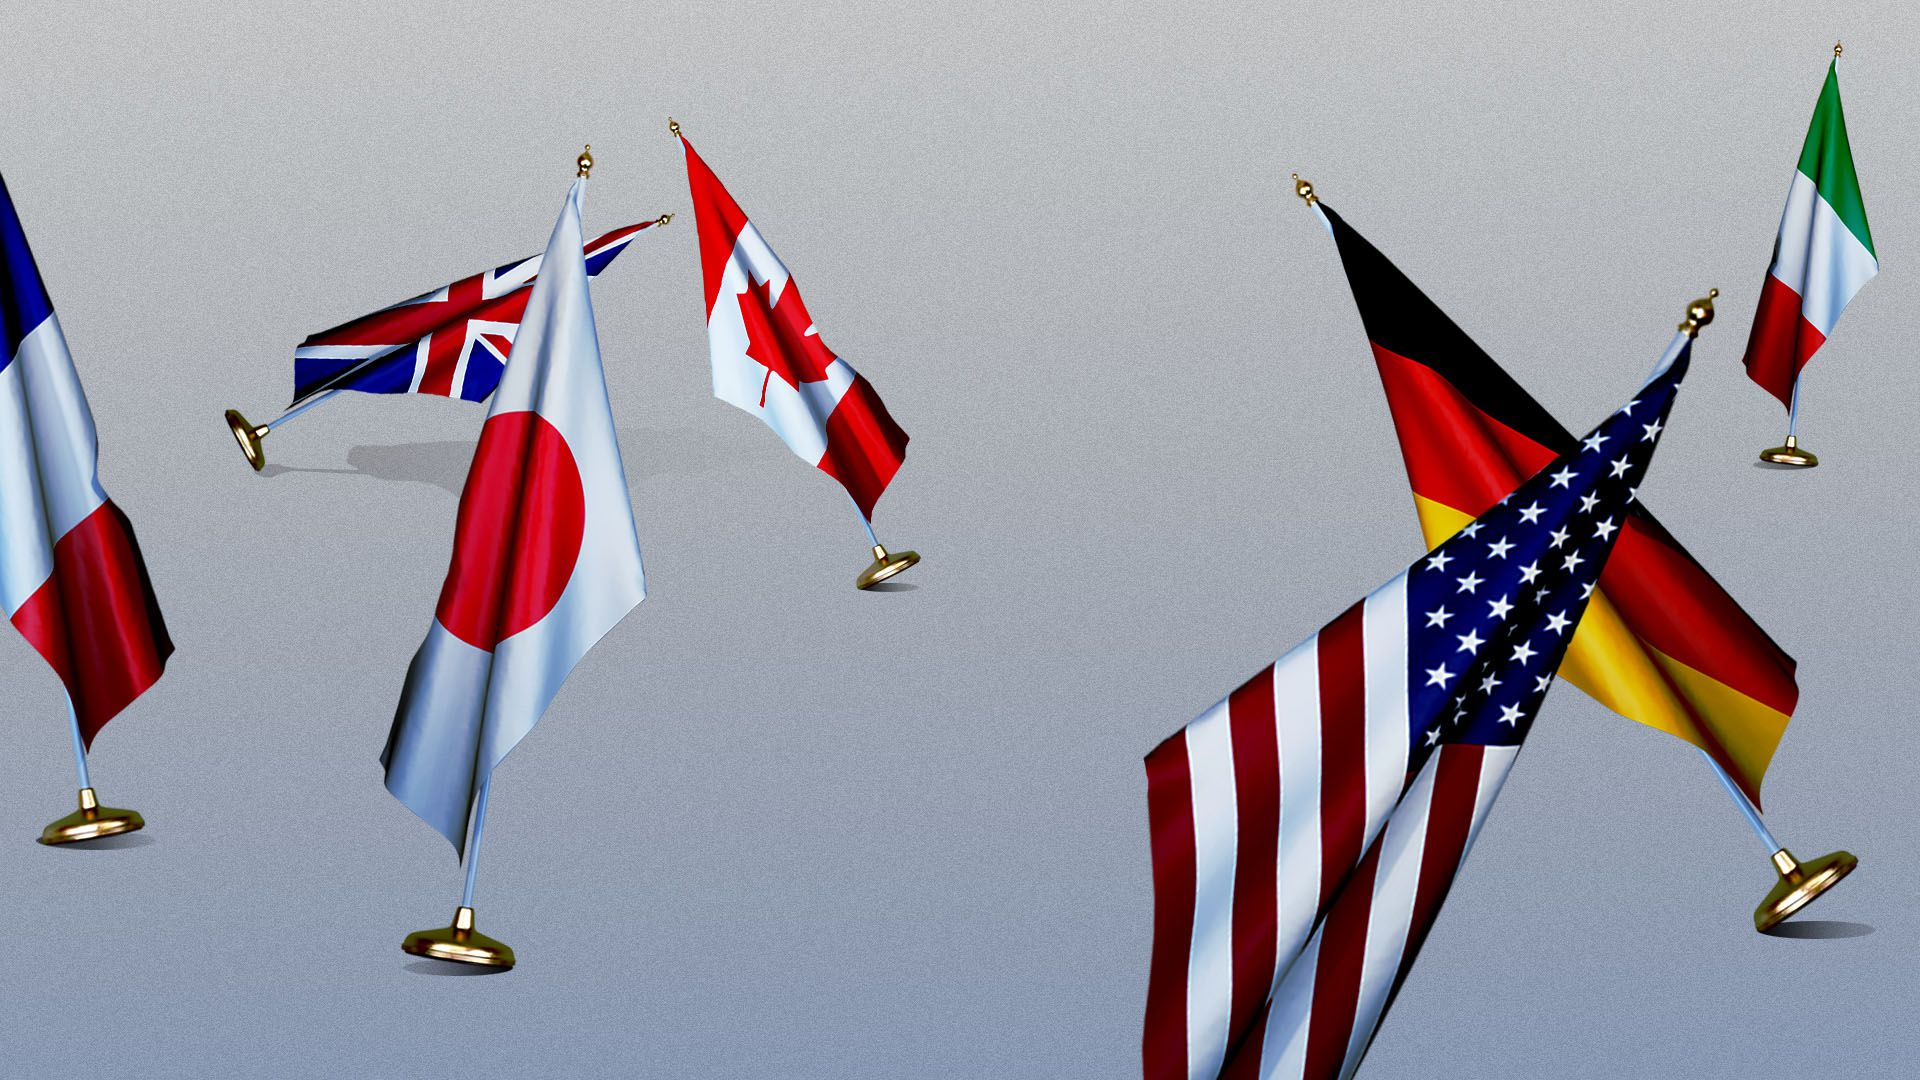 Illustration of the G7 flags in various states of falling over